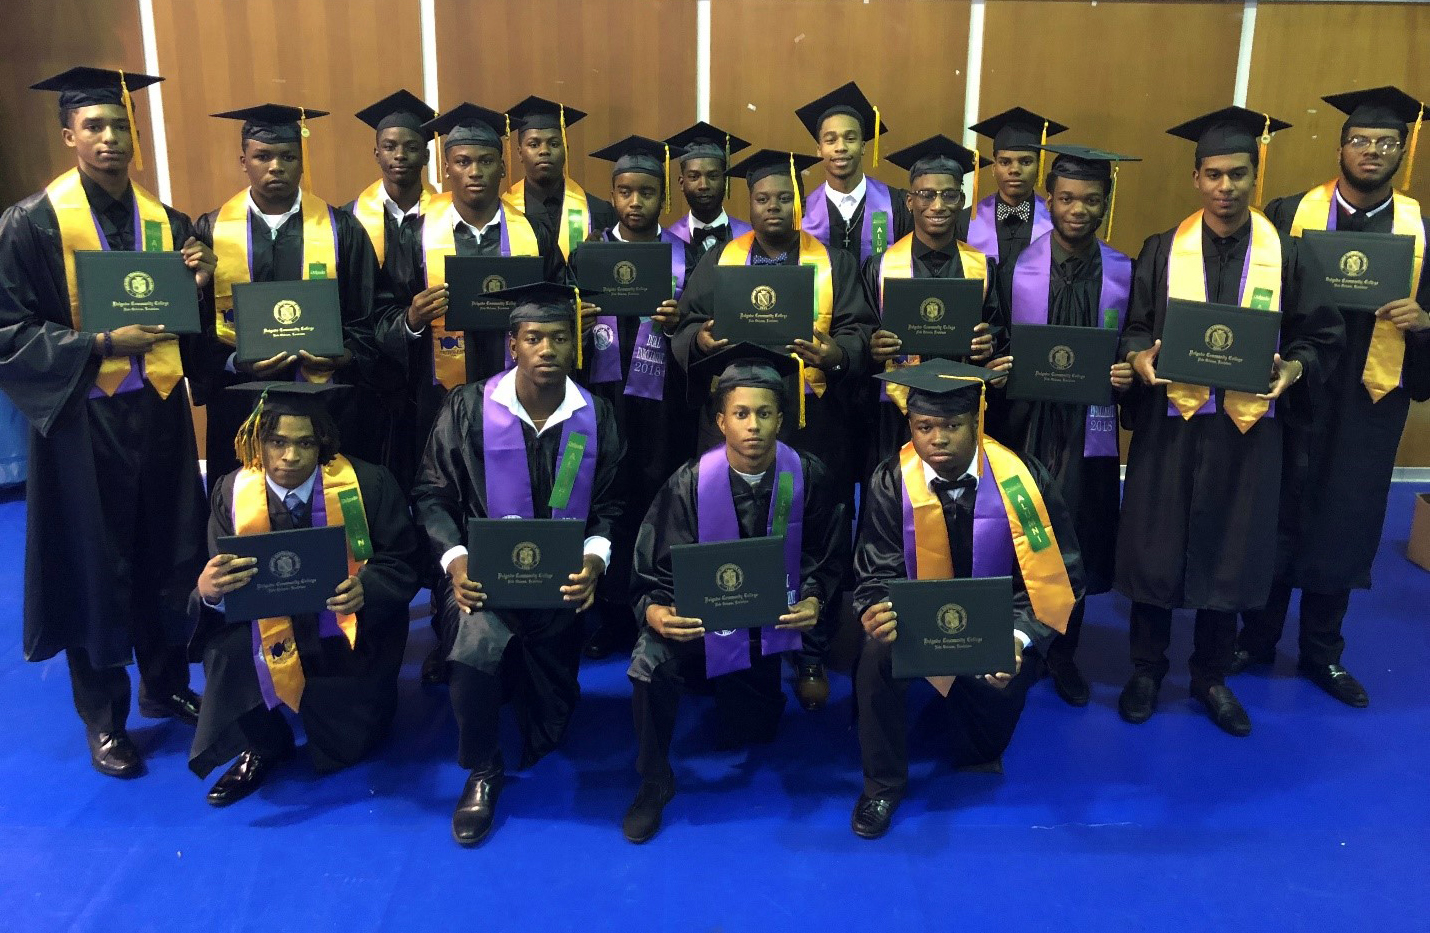 Warren Easton Charter High School students pose for a photo, holding their Delgado diplomas, after graudating from a Delgado dual enrollment program